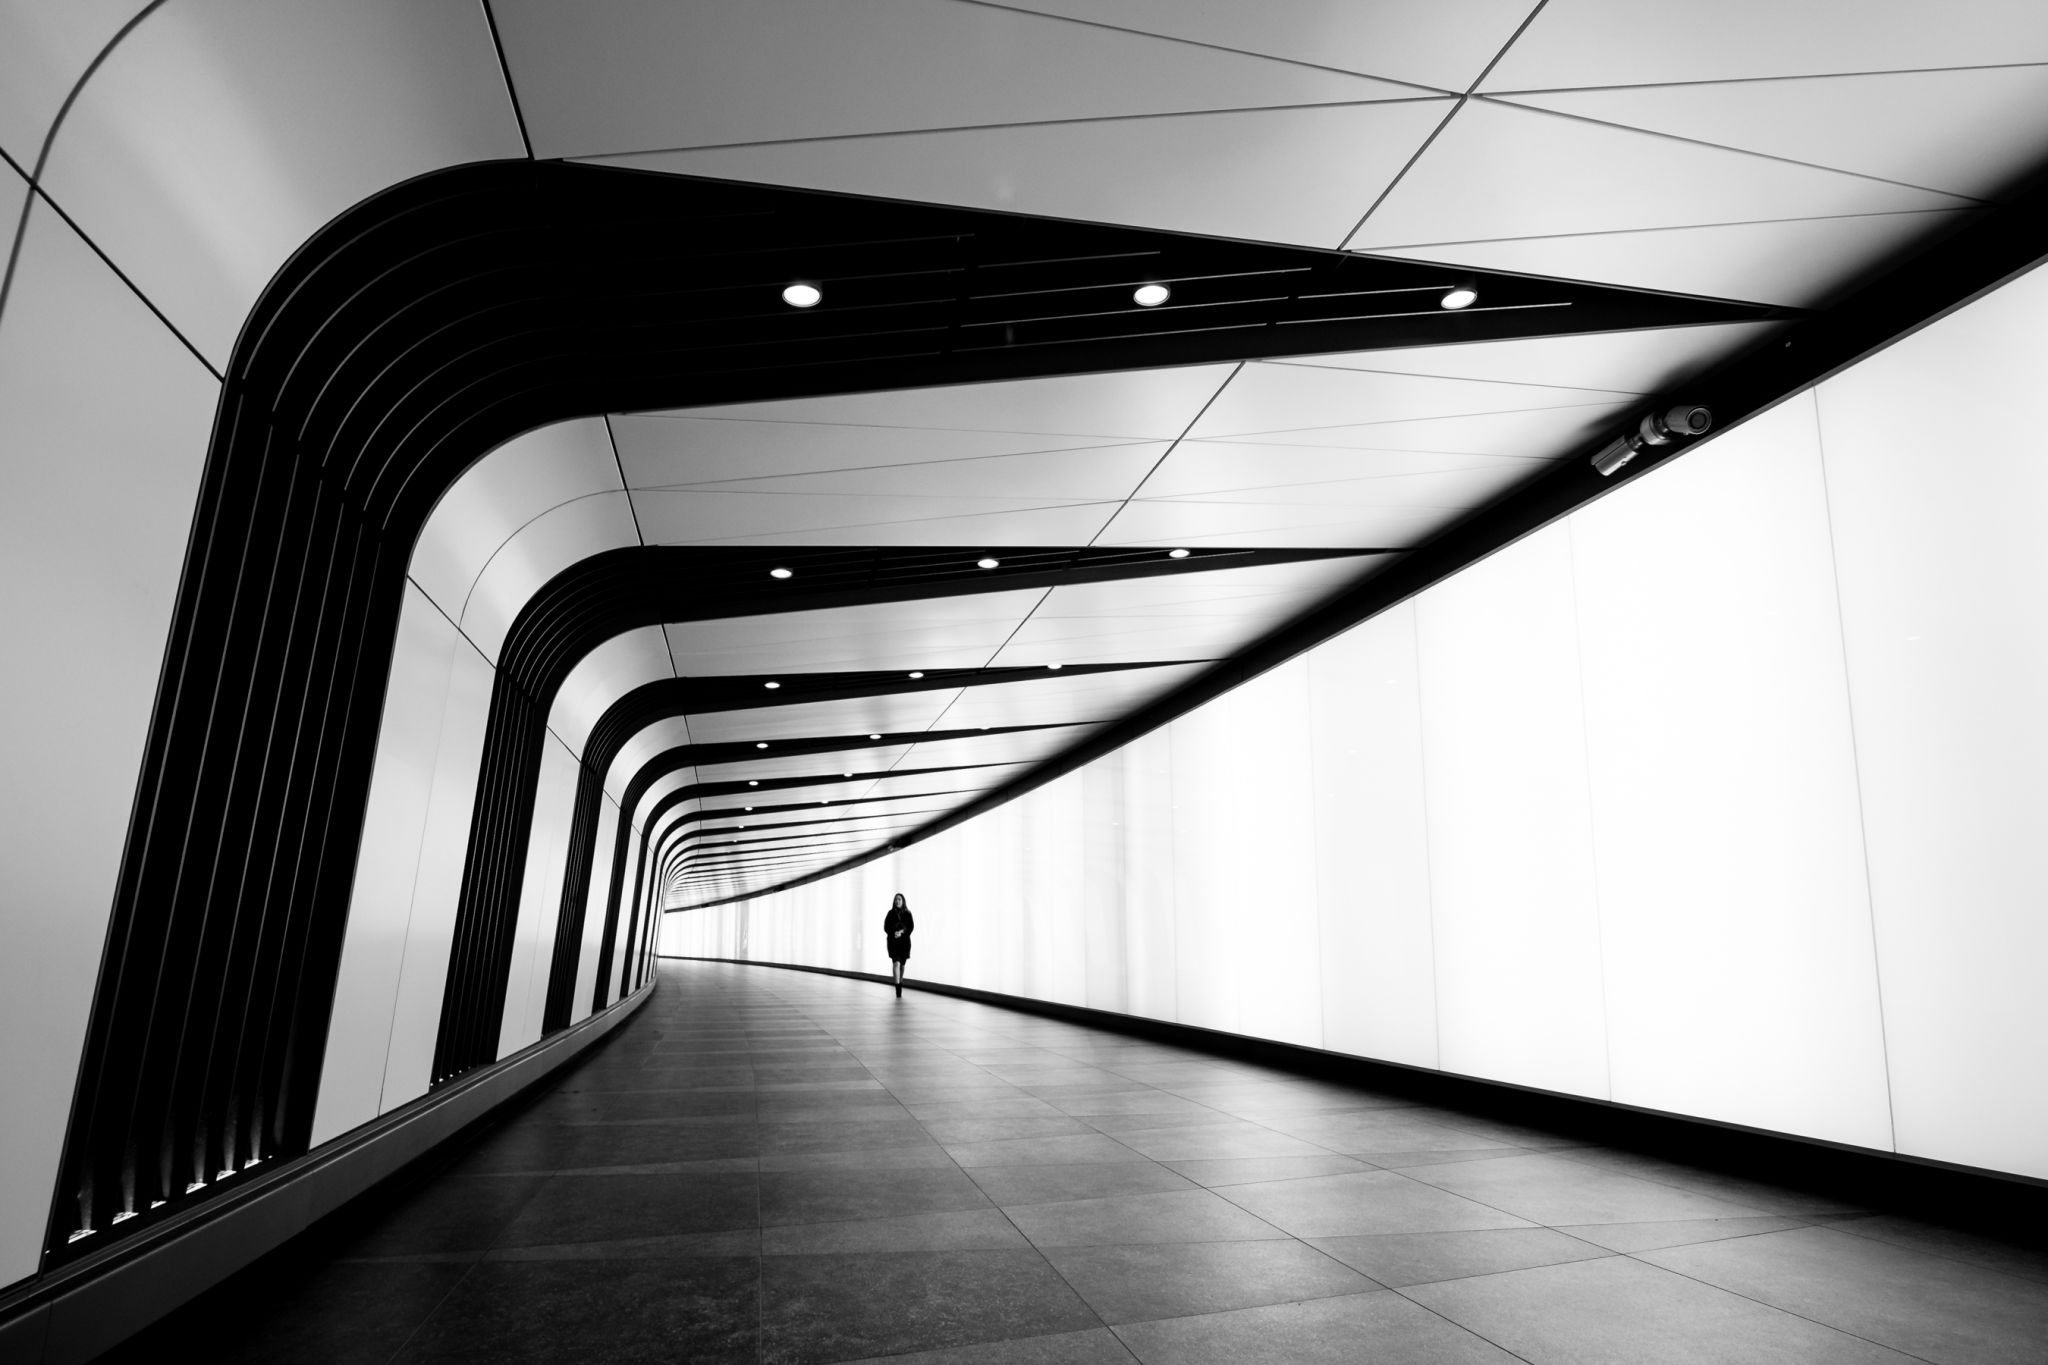 King's Cross/St Pancras Connecting Tunnel, United Kingdom